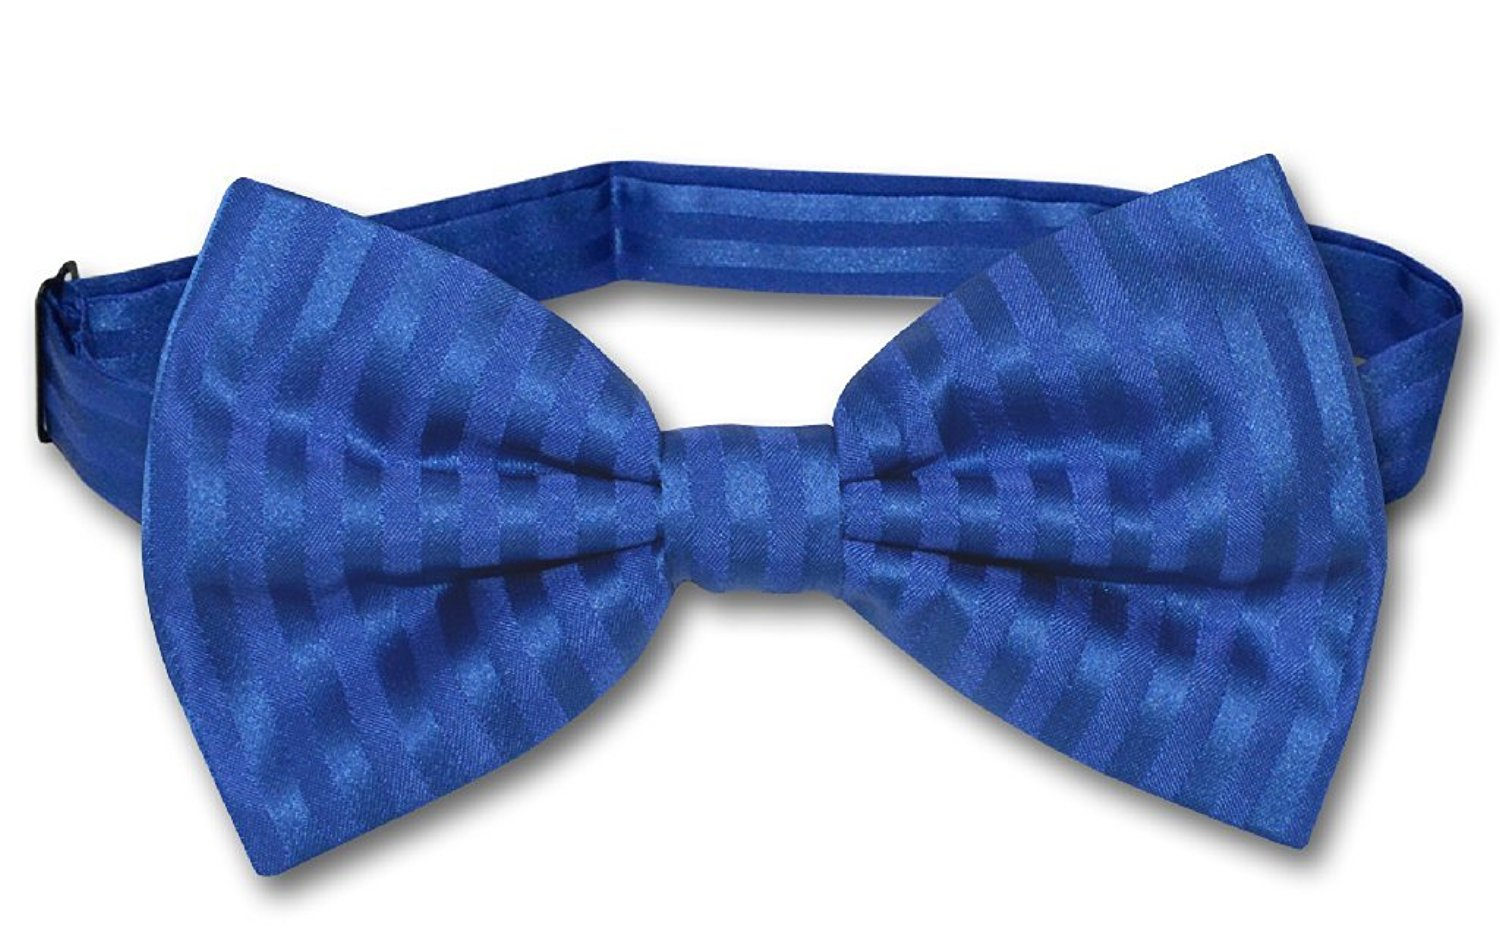 Vesuvio Napoli BOWTie ROYAL BLUE Color Striped Vertical Stripes Men's Bow Tie